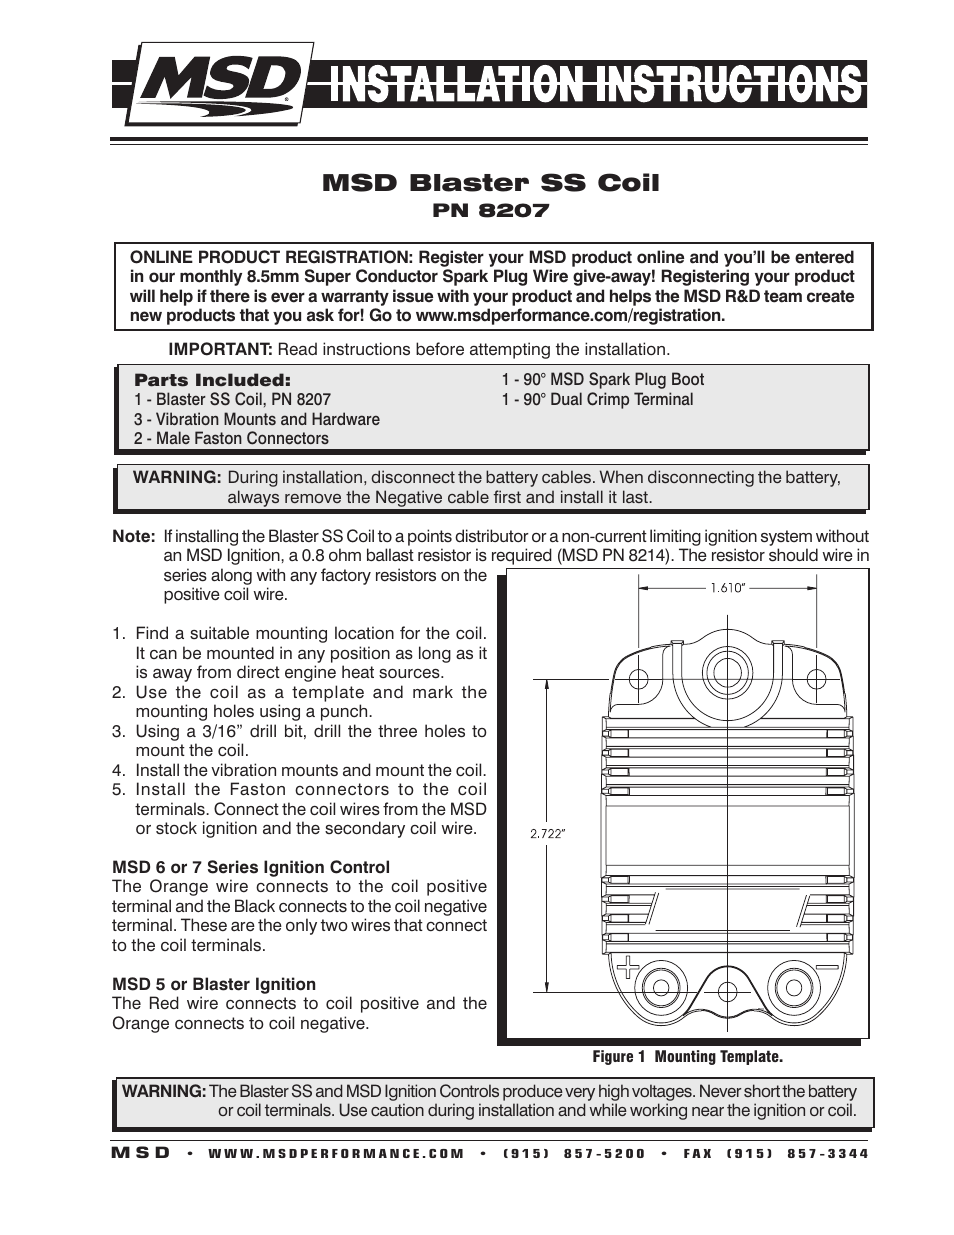 msd blaster coil wiring diagram gsxr 750 8207 ss installation user manual | 2 pages